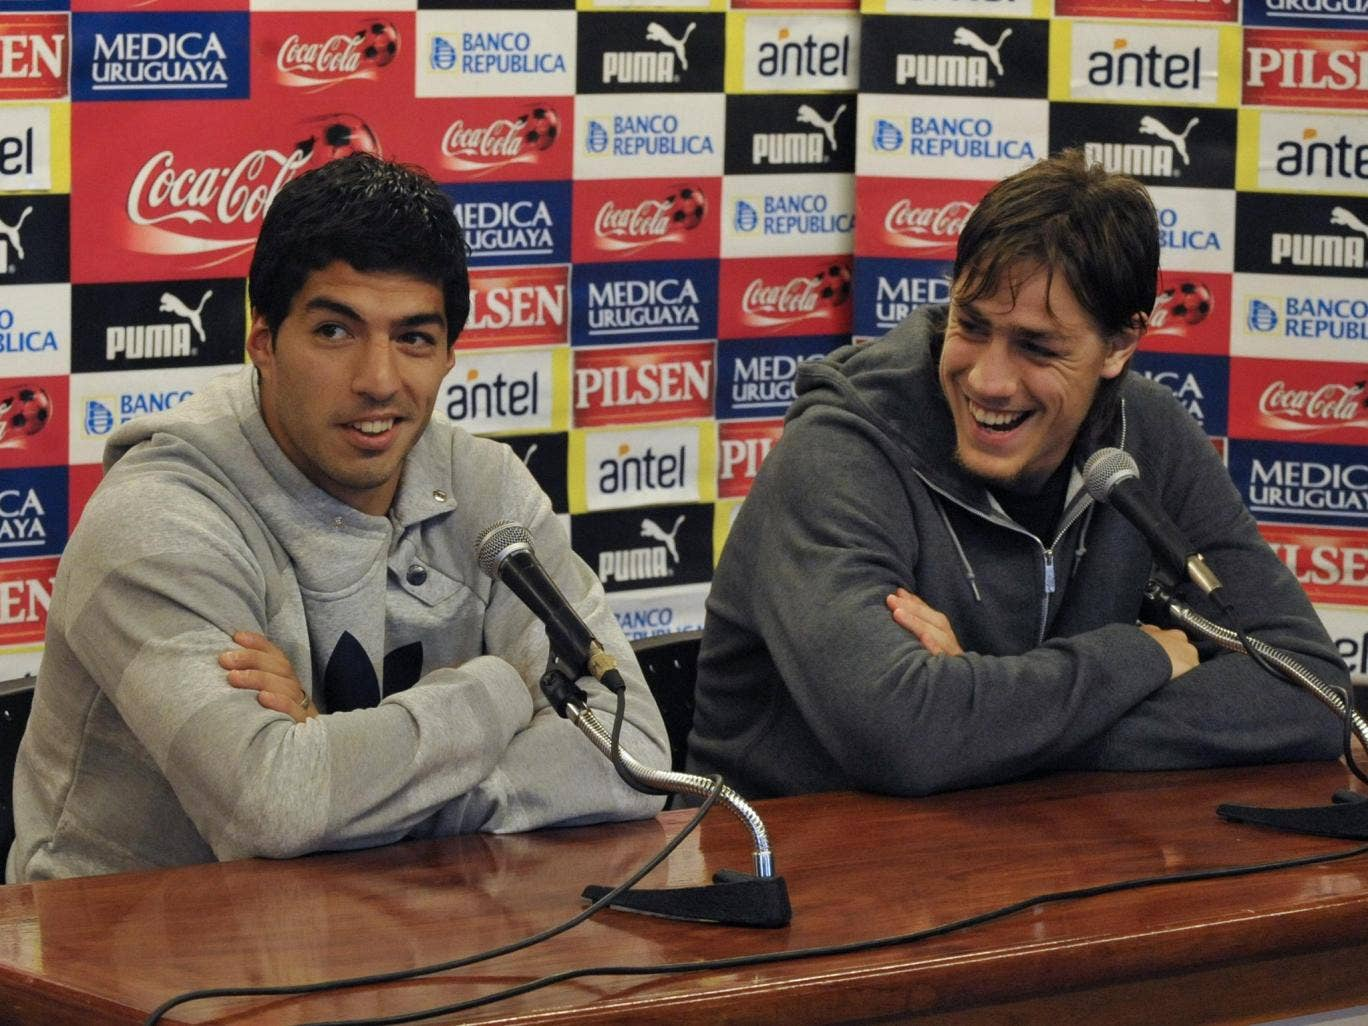 Luis Suarez and Sebastian Coates have been named in the Uruguay World Cup squad